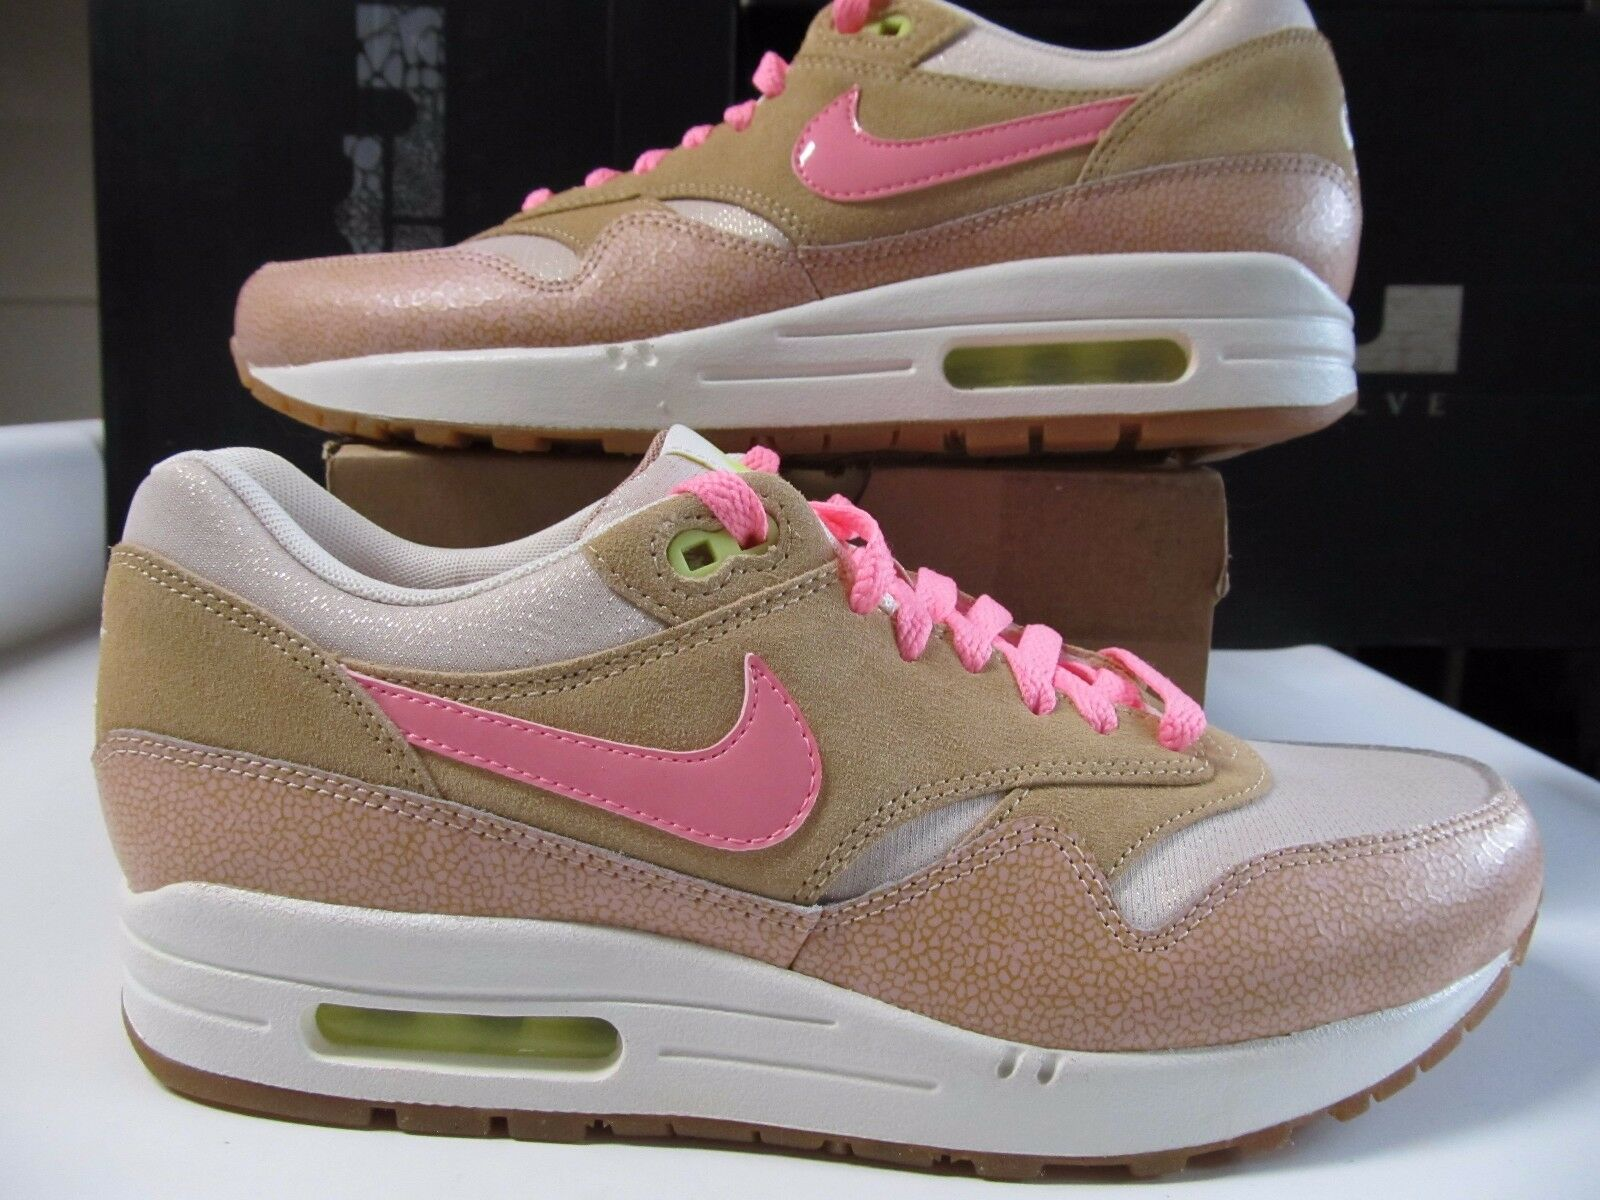 Womens Nike Air Max 1 PRM Premium Dusted Clay Prlzd Pink Vachetta Tan 454746 201